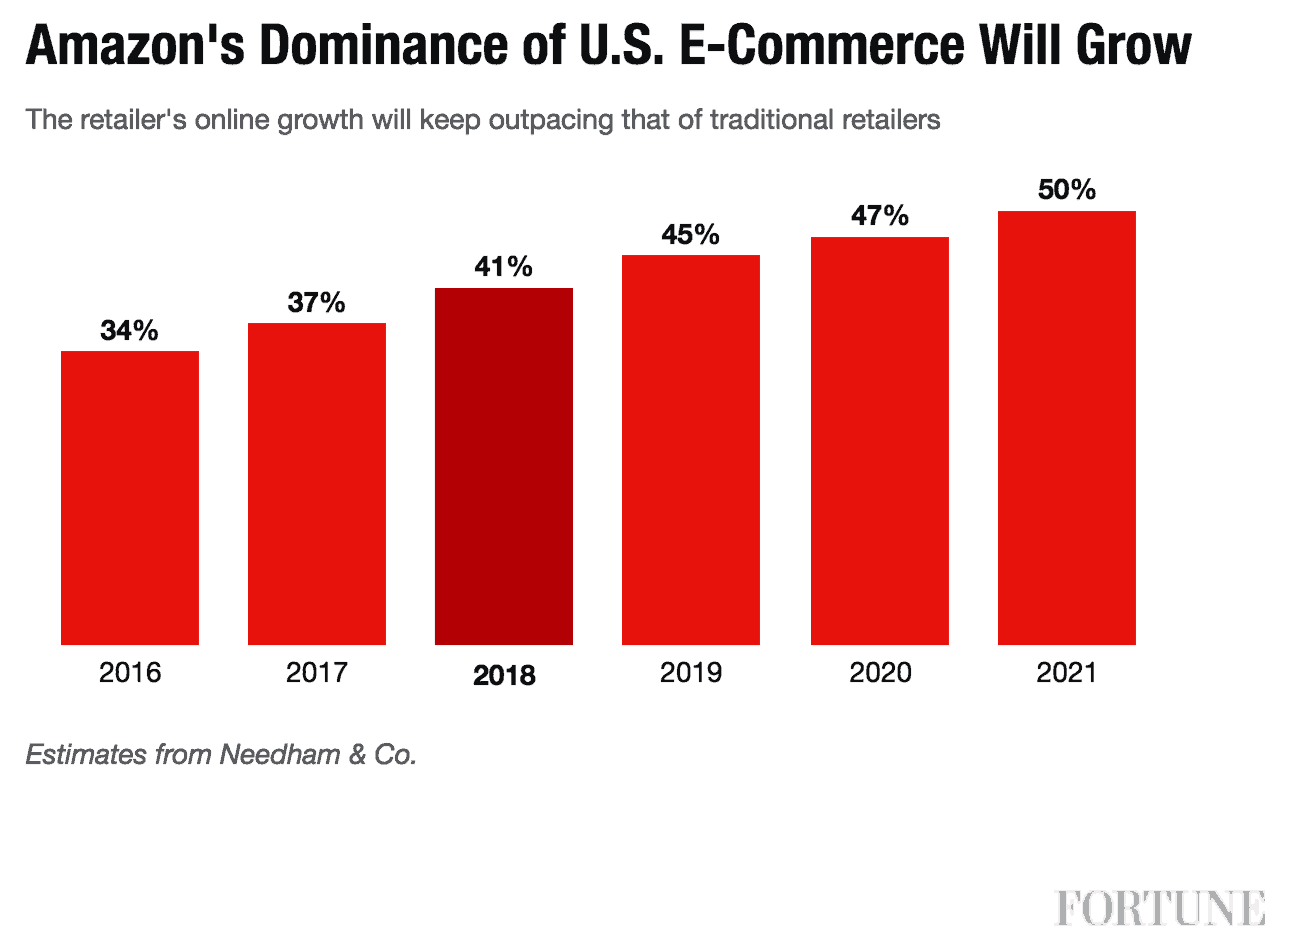 Amazon eCommerce Market Share Growth